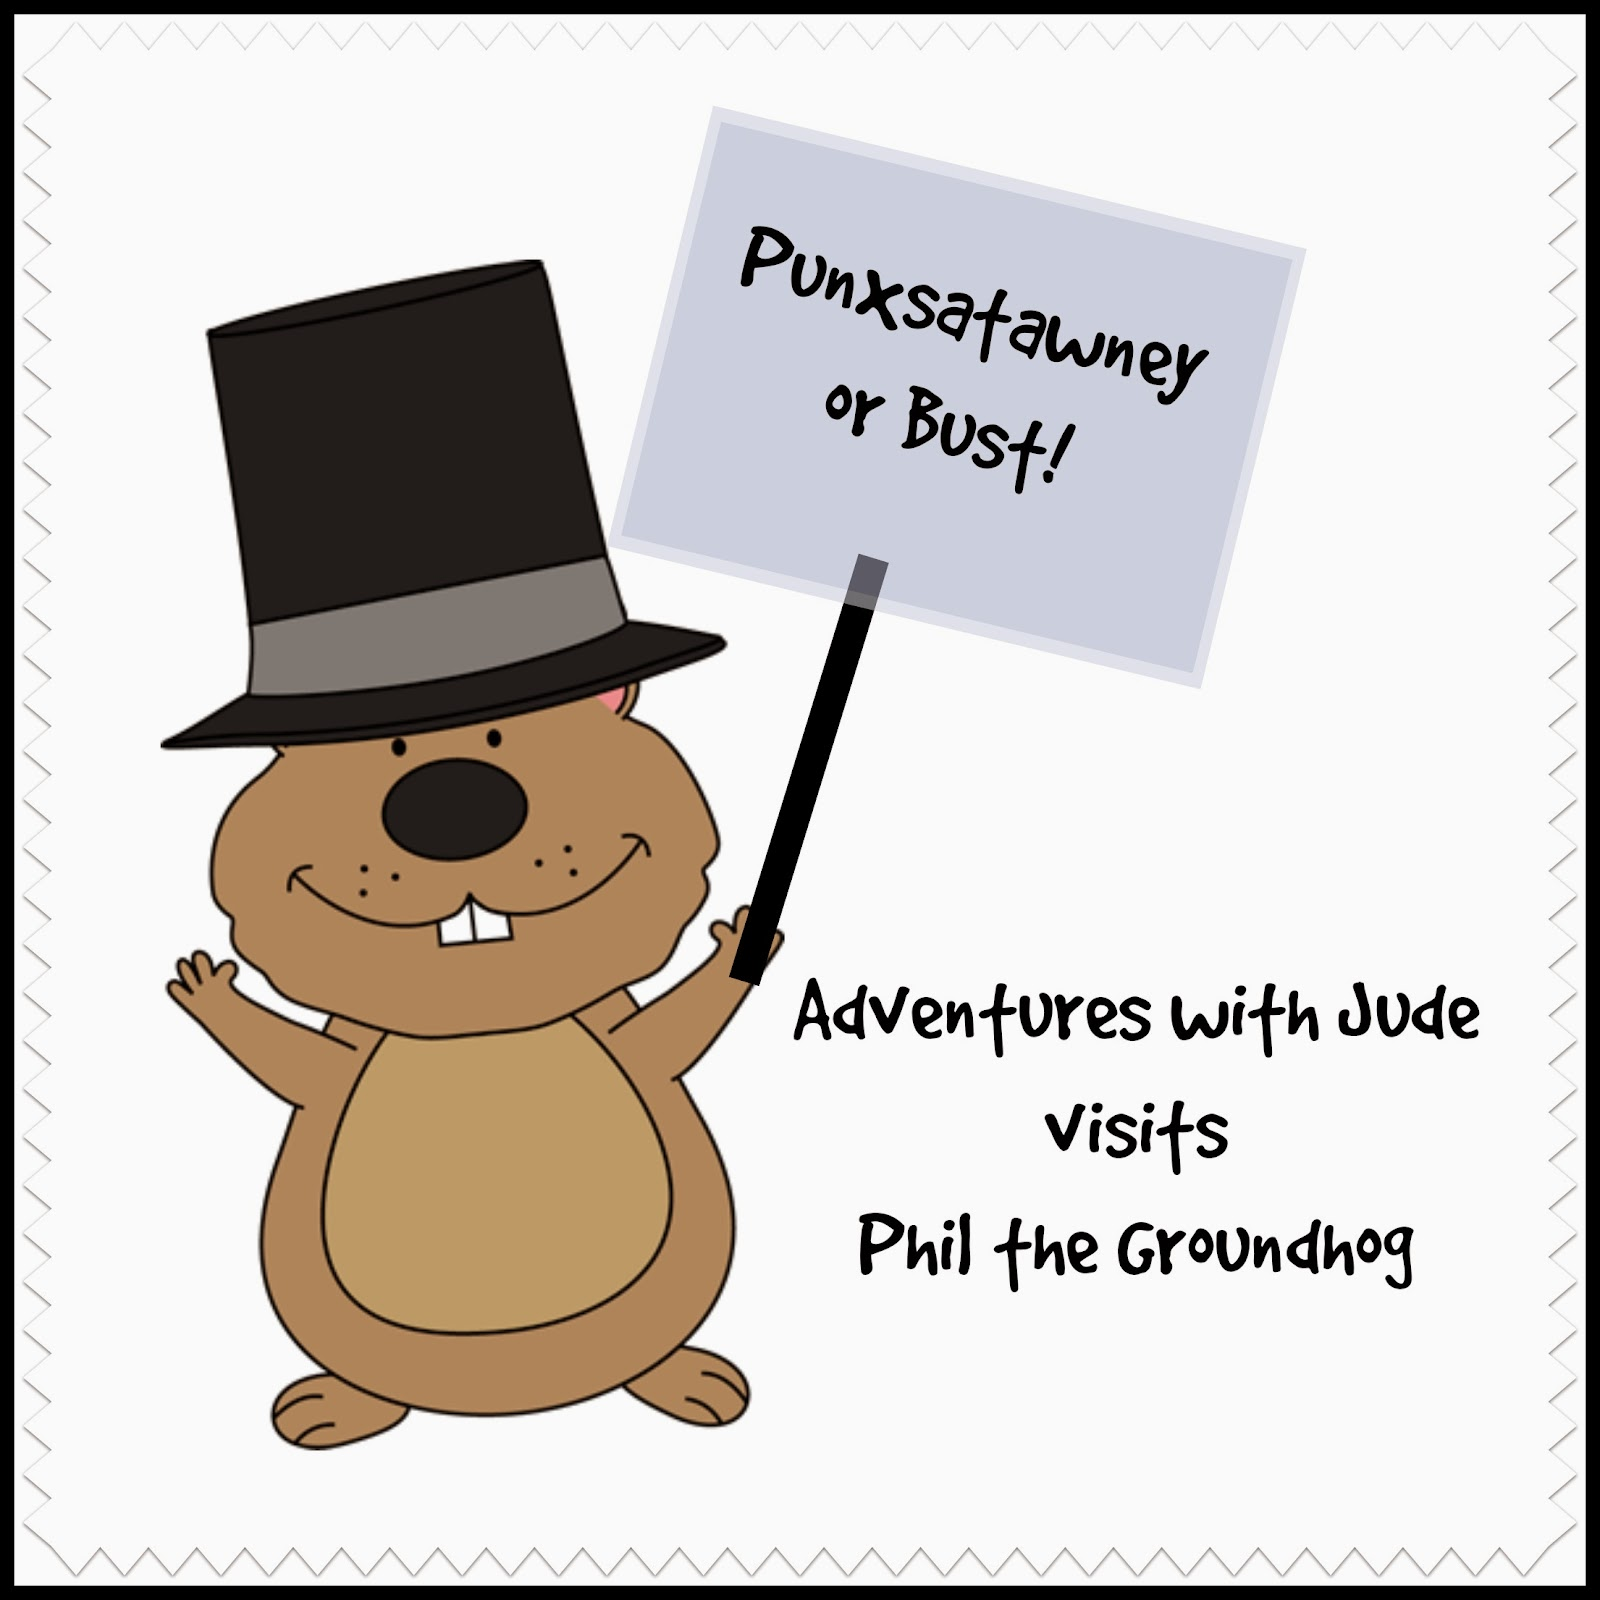 Punxsutawney or Bust: Adventures with Jude visits Phil the Groundhog